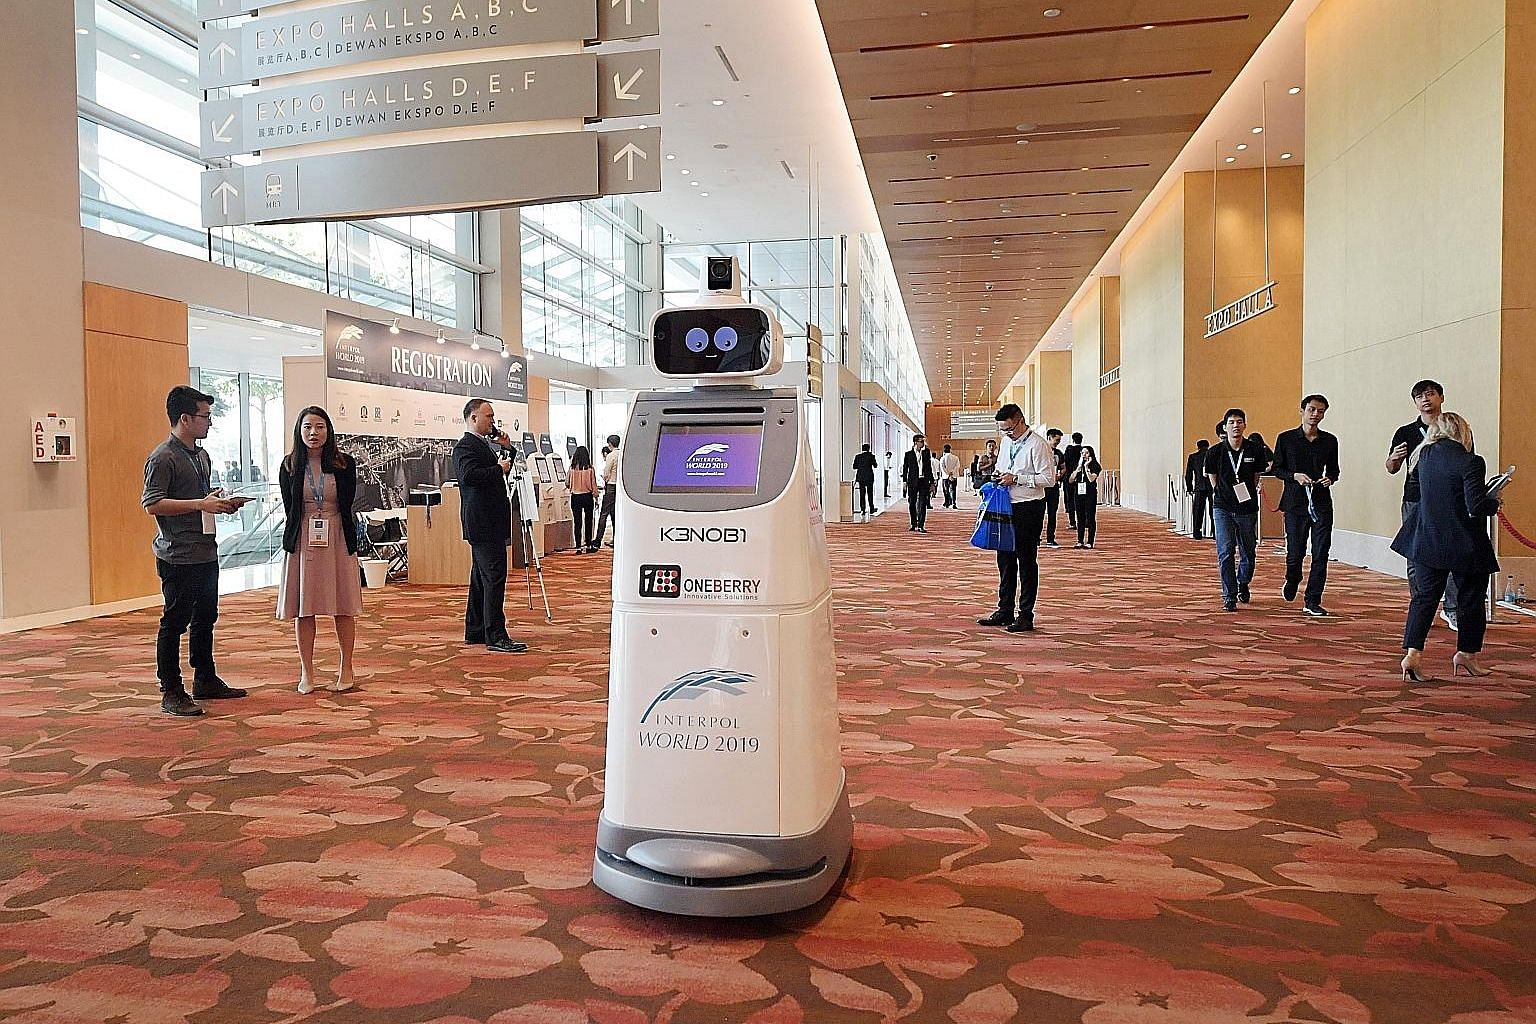 Robot security guard KenOBI deployed by OneBerry Technologies at the Interpol World conference at Marina Bay Sands yesterday.